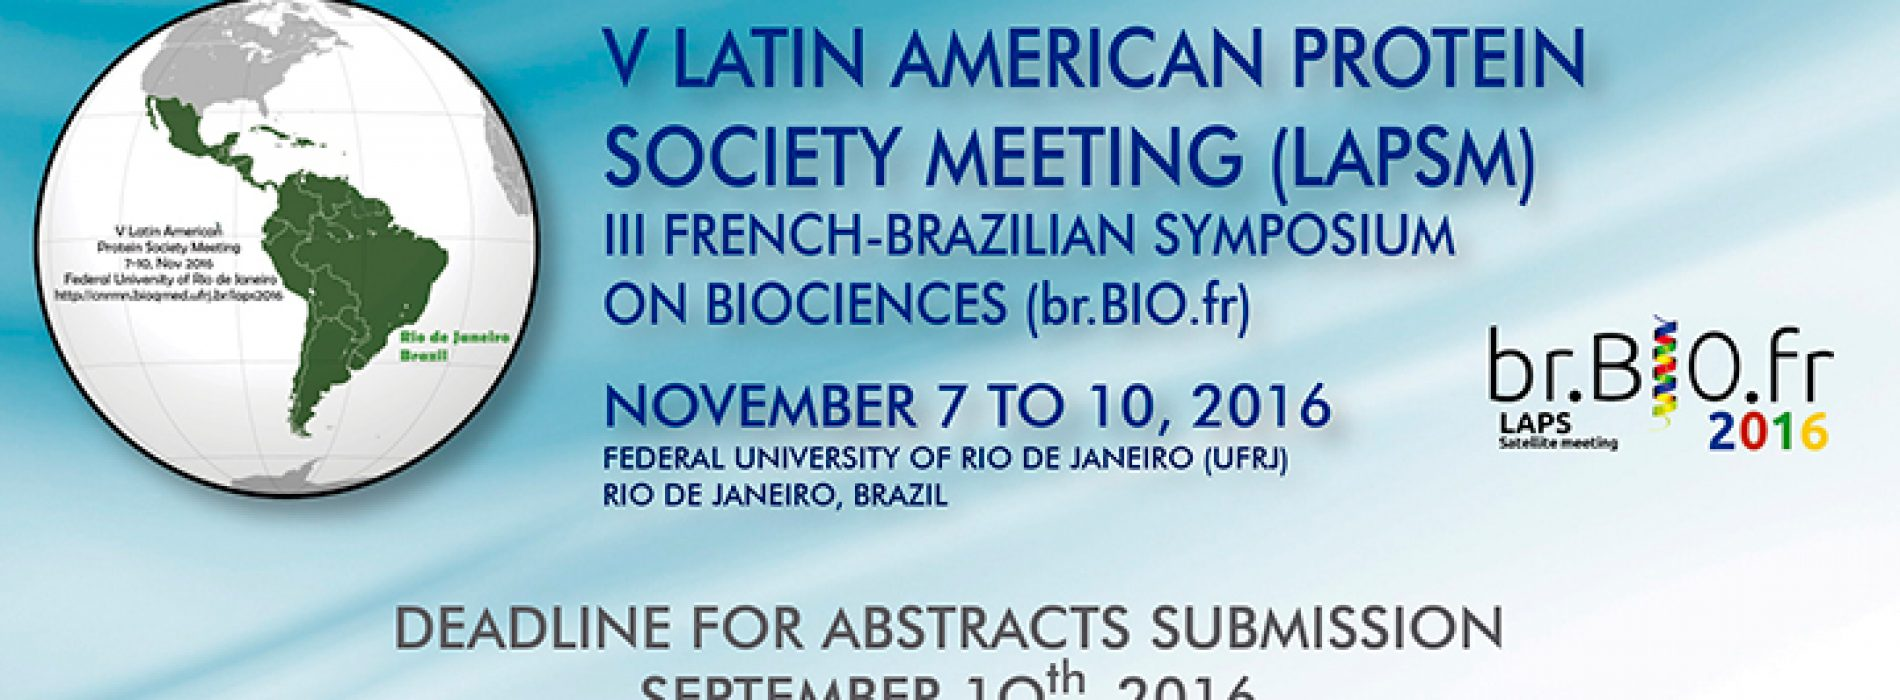 V Latin American Protein Society Meeting (LAPSM)